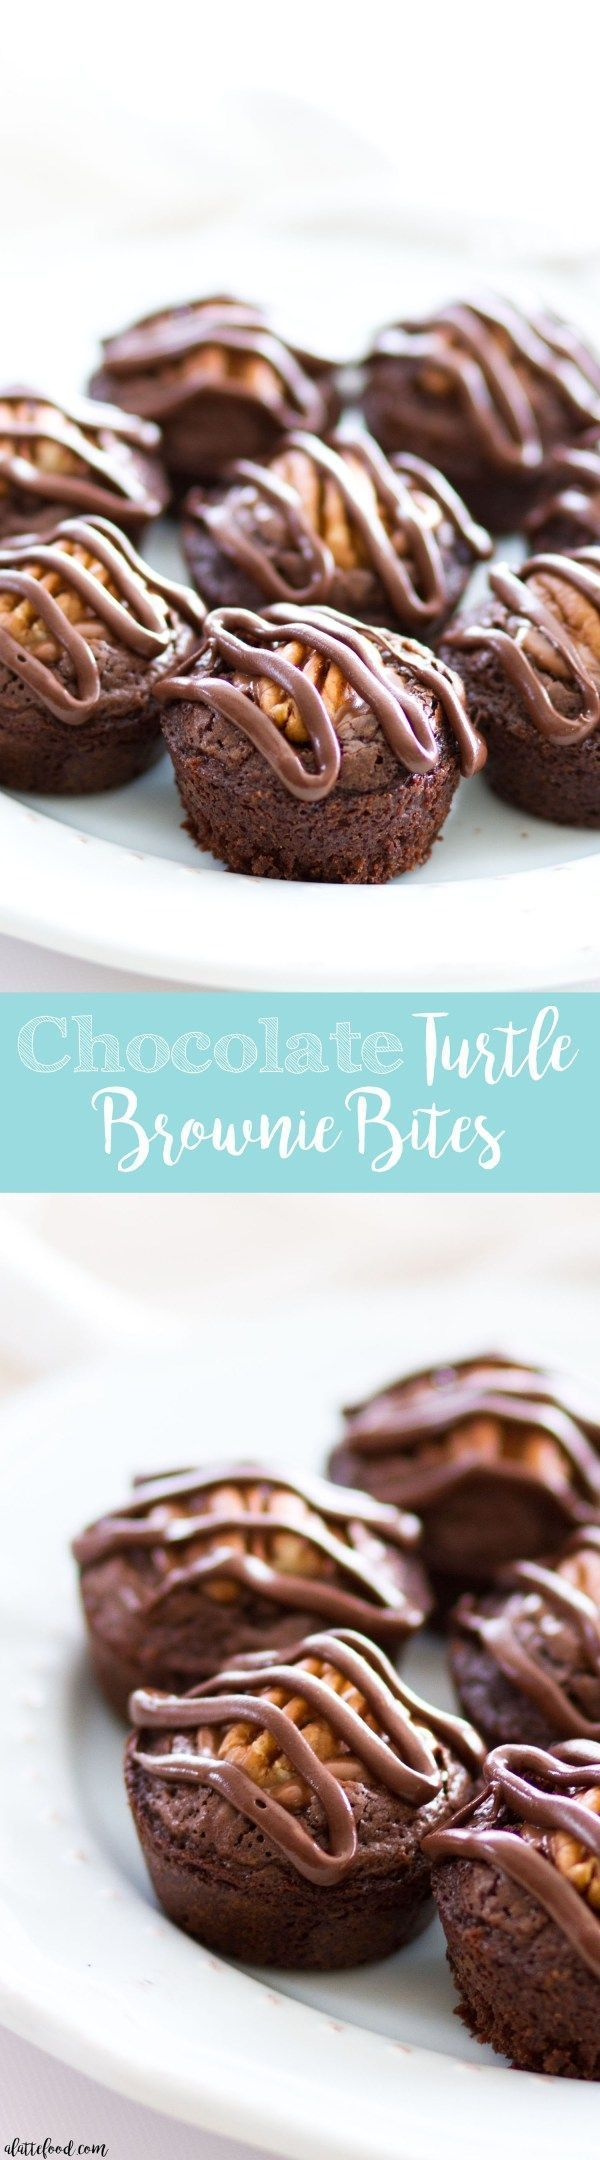 Chocolate Turtle Brownie Bites #turtlebrownies These chocolate turtle brownie bites are a simple yet rich dessert that can be made with homemade brownie batter or boxed brownie batter! The brownies are stuffed with chocolate covered caramels (like Rolos), topped with a pecan, and drizzled with melted chocolate! Plus, a step-by-step video below.